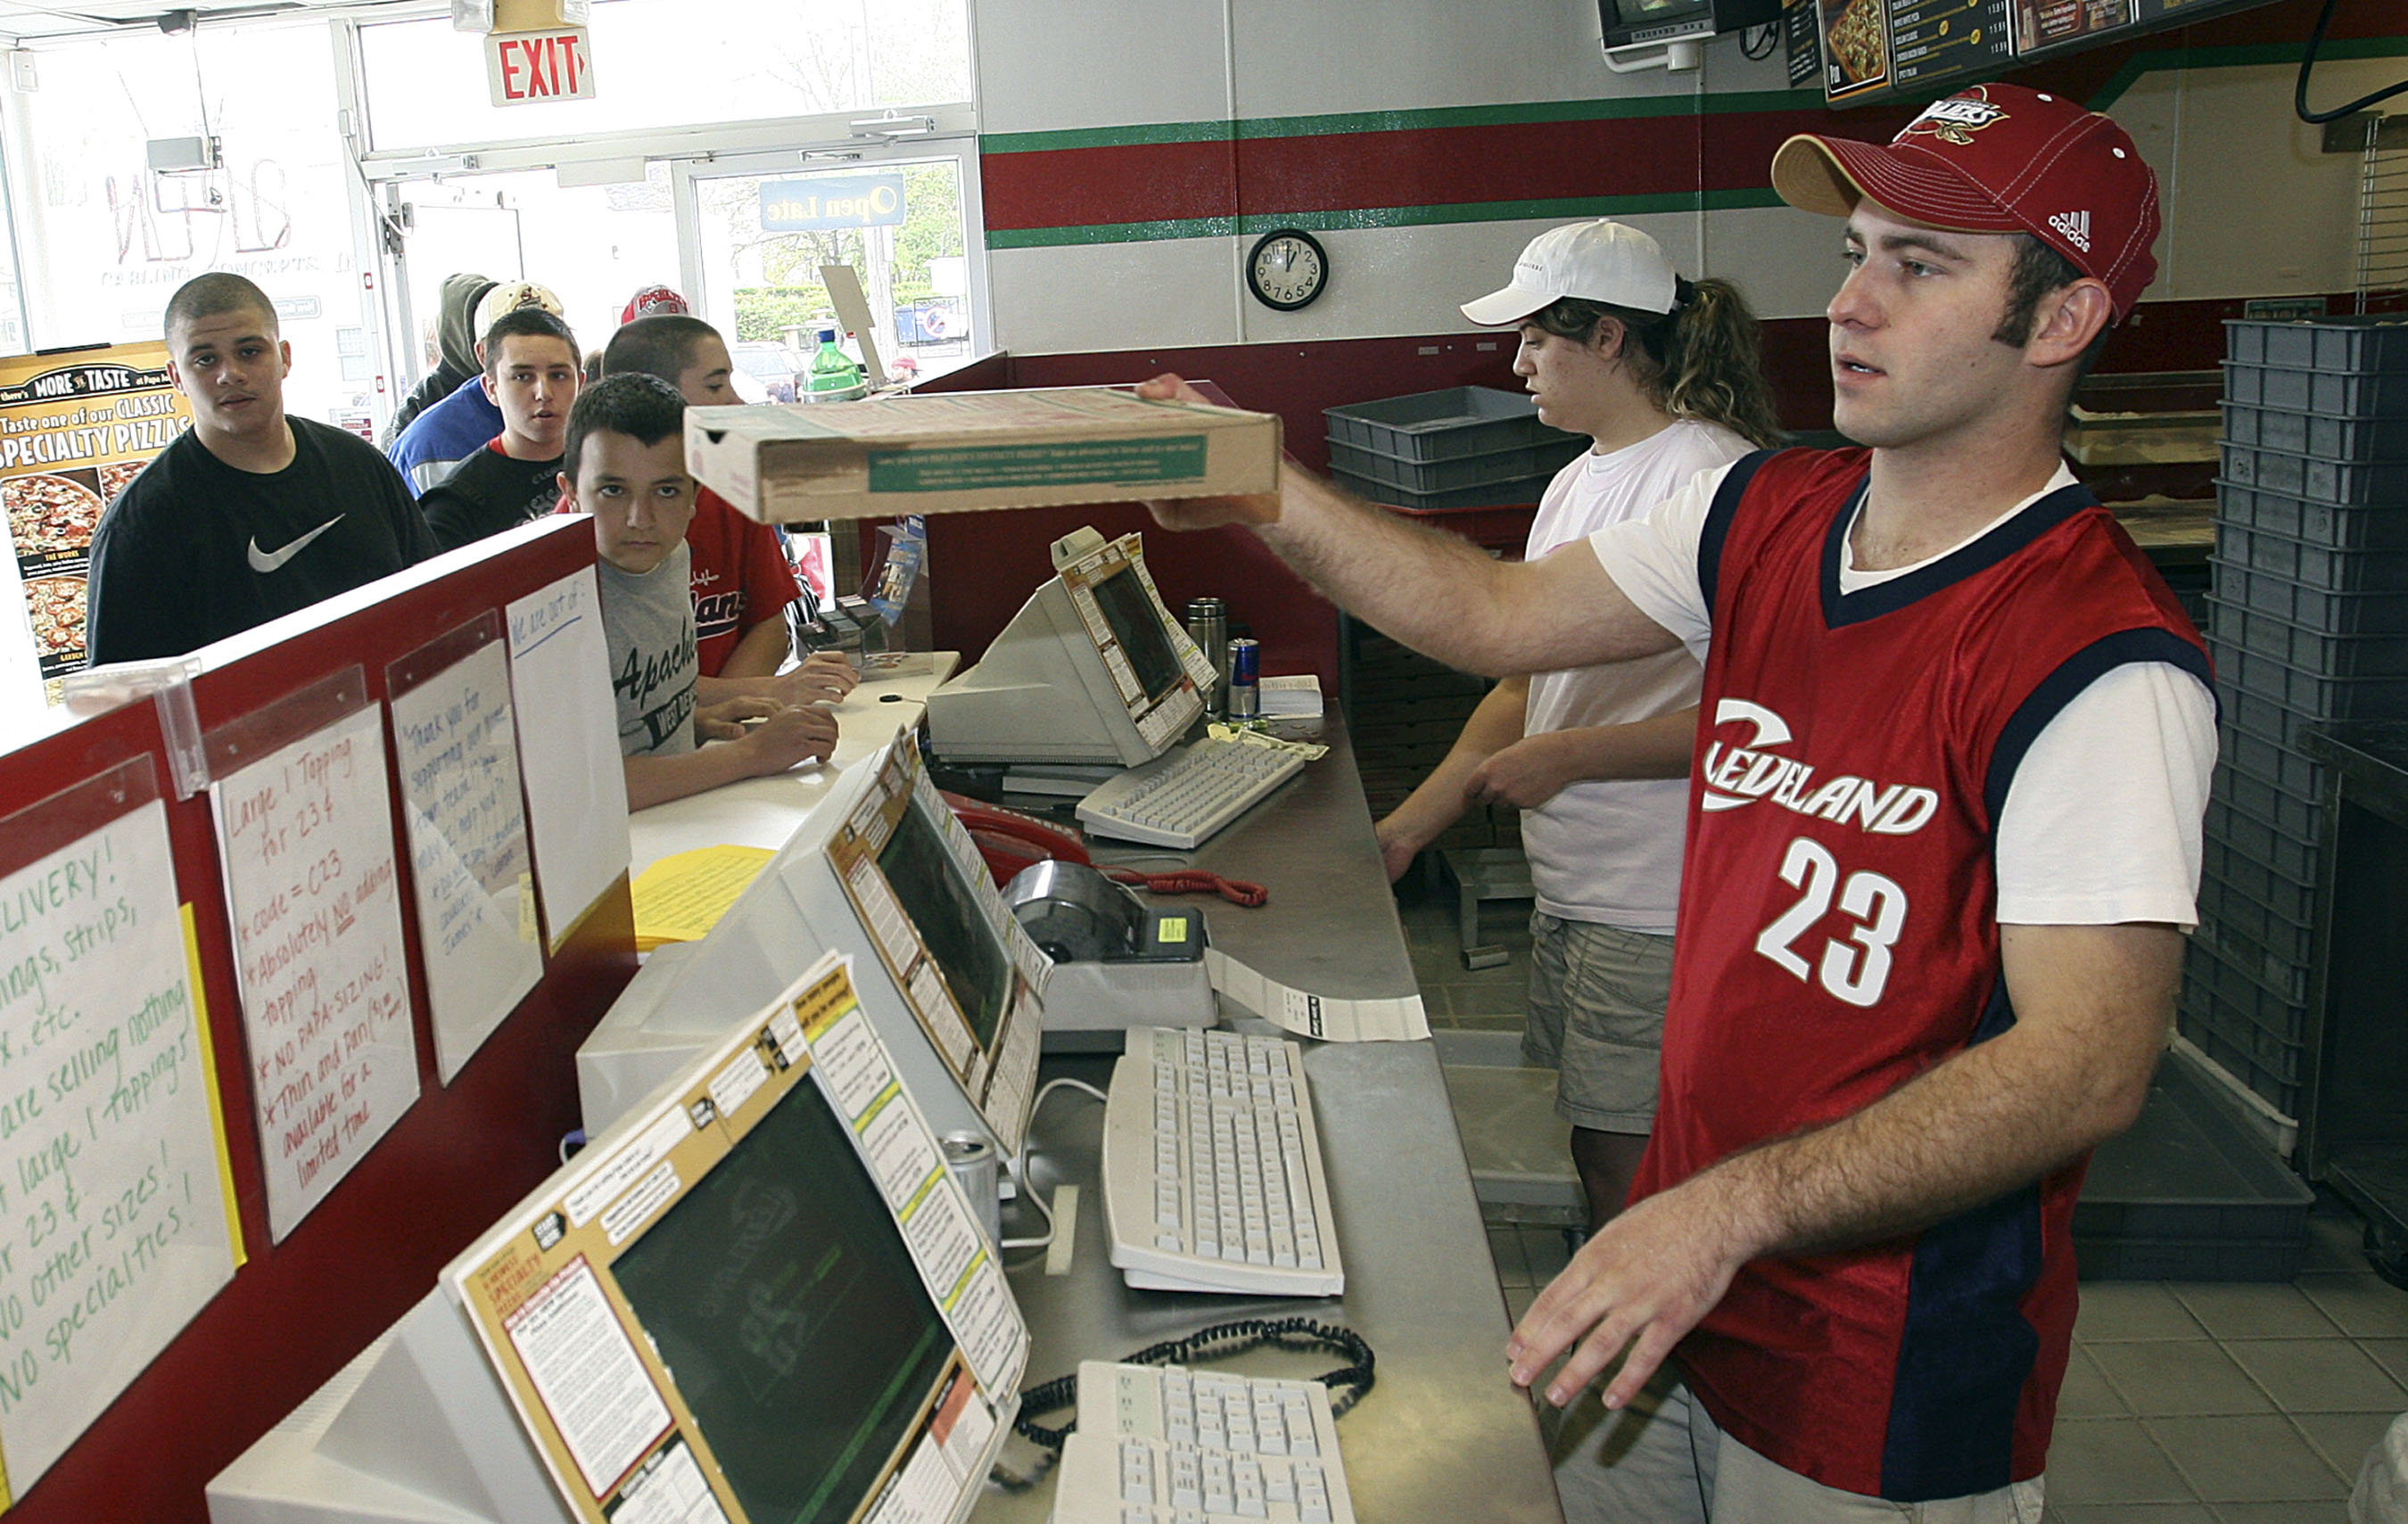 Papa Johns worker hands out pizzas in response to Washington D.C. Papa Johns promotion in which Cavaliers James was shown on shirts as cry baby in Lakewood